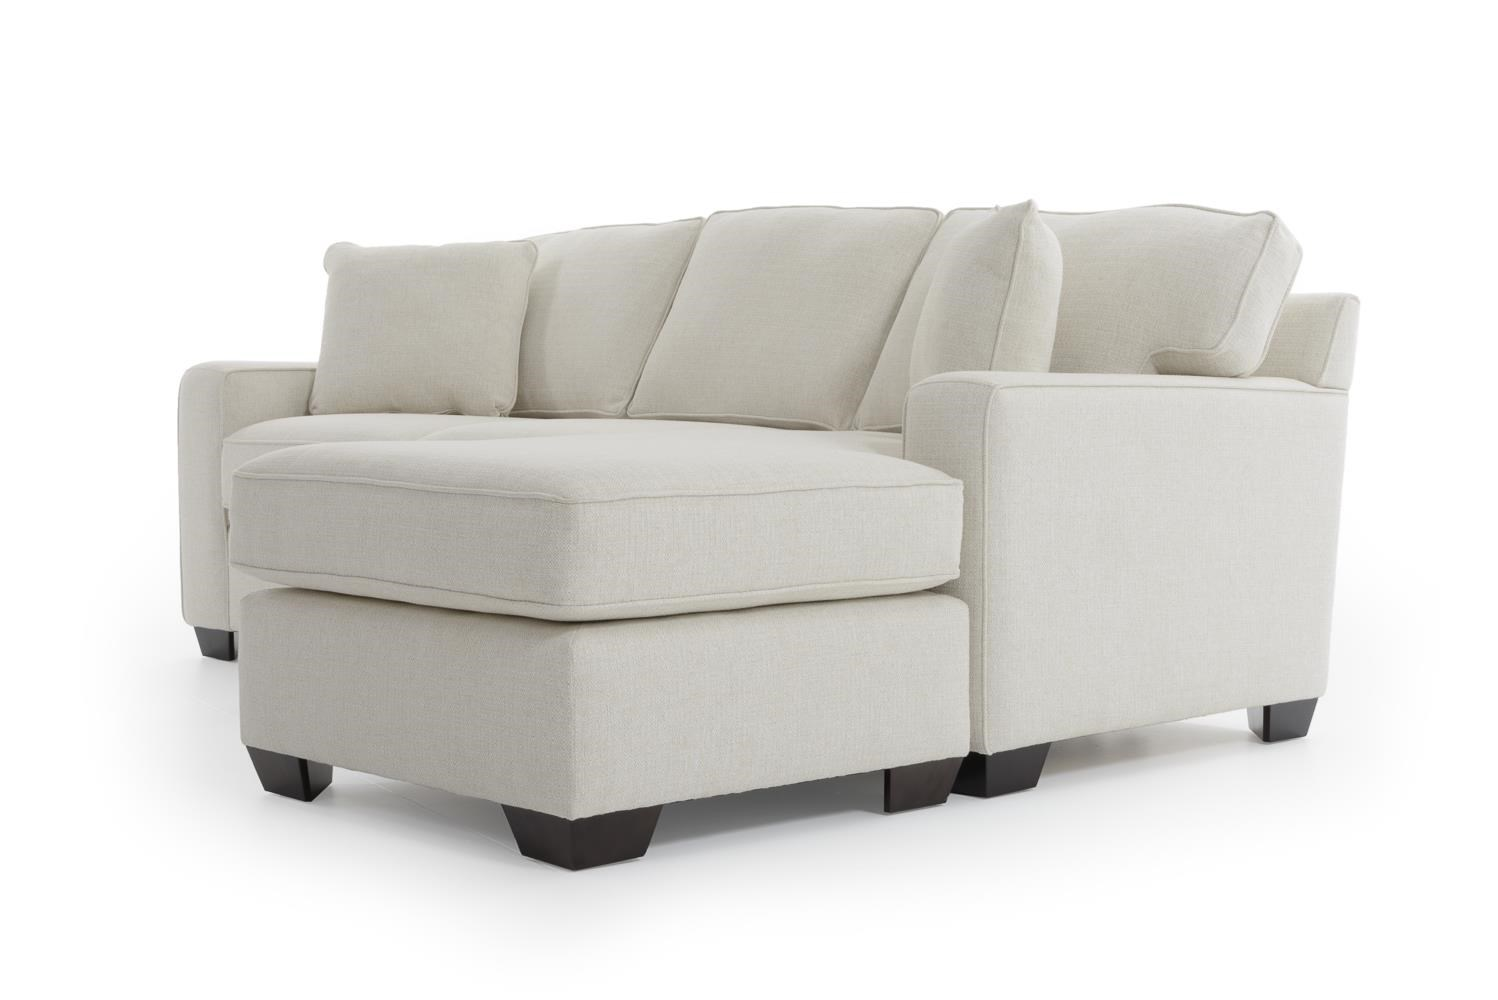 Max home bermuda 9jh6 a bk 9jh6 a xc cream king sized sofa - Apartment size sofa with chaise ...